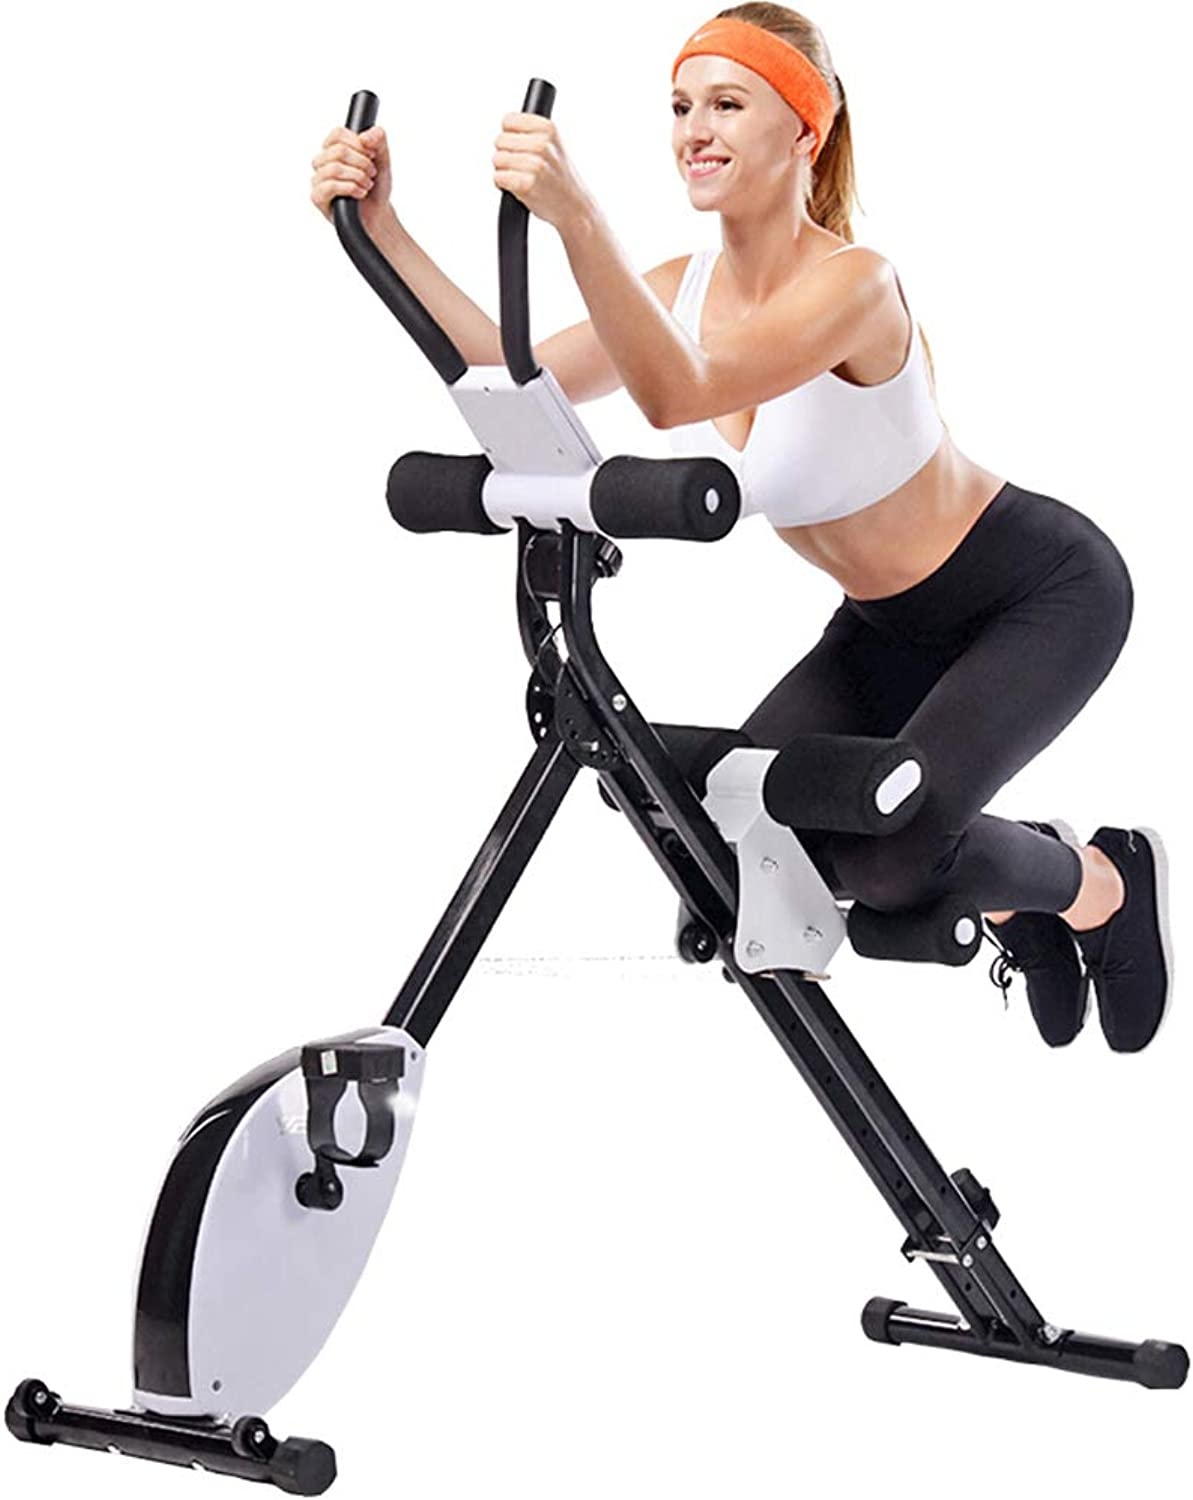 200KG Capacity 2 in1 Folding Magnetic Upright Exercice Bike,Waist and Abdomen Training Equipment with Adjustable LCD Monitor XBike